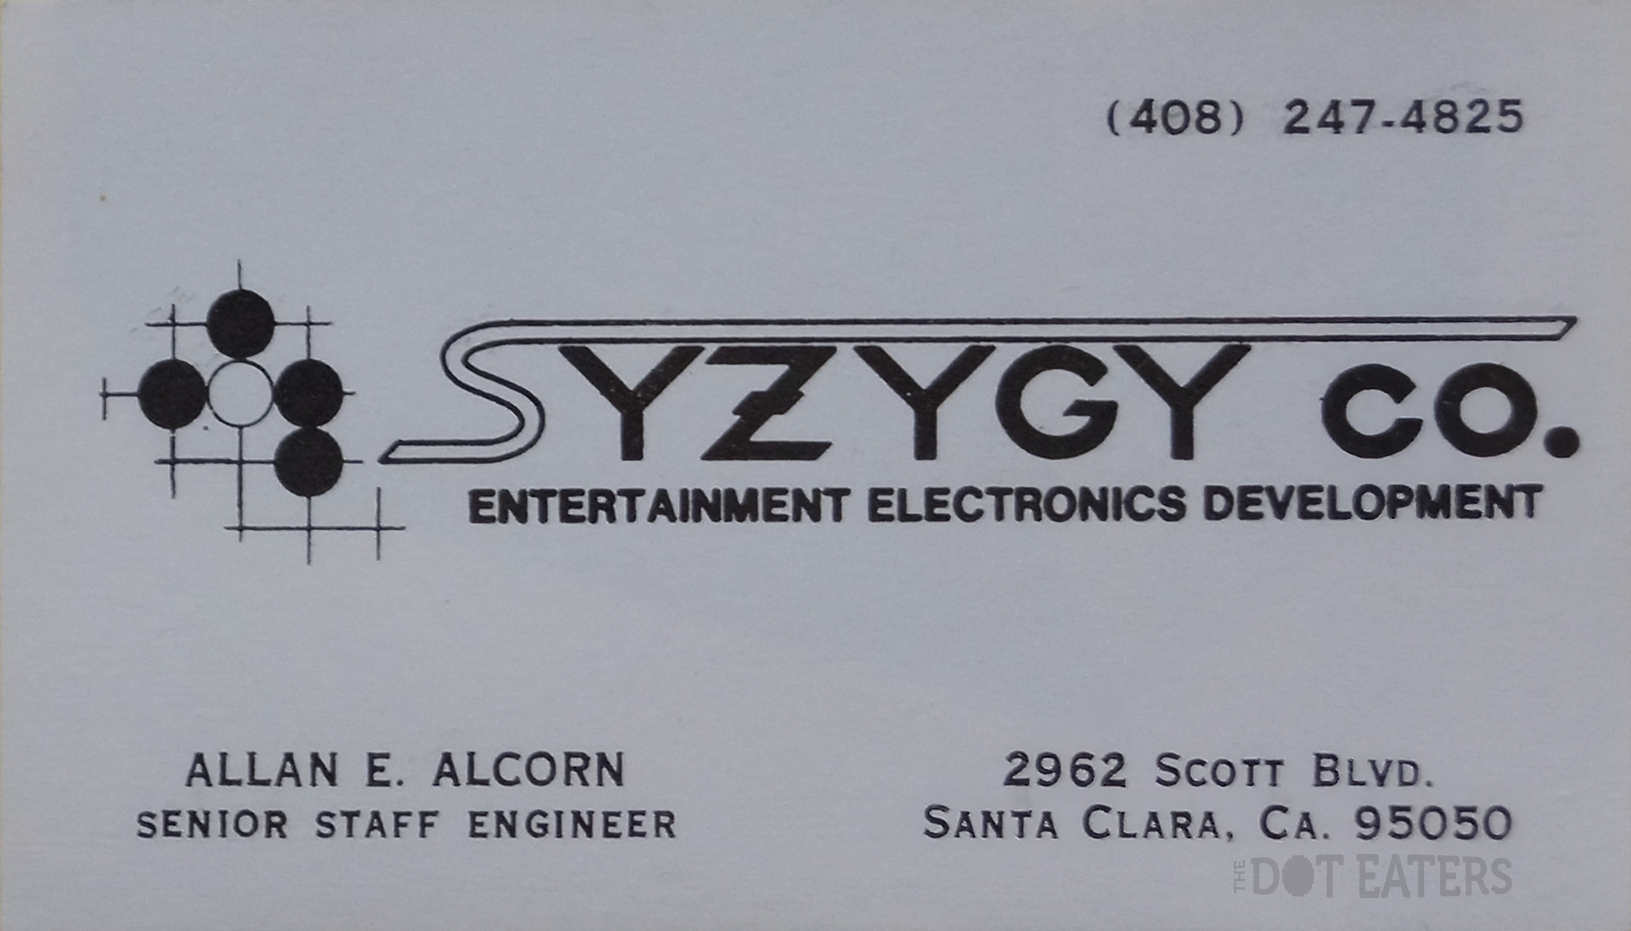 Business card for Al Alcorn, creator of PONG, an arcade video game by Syzygy/Atari 1972